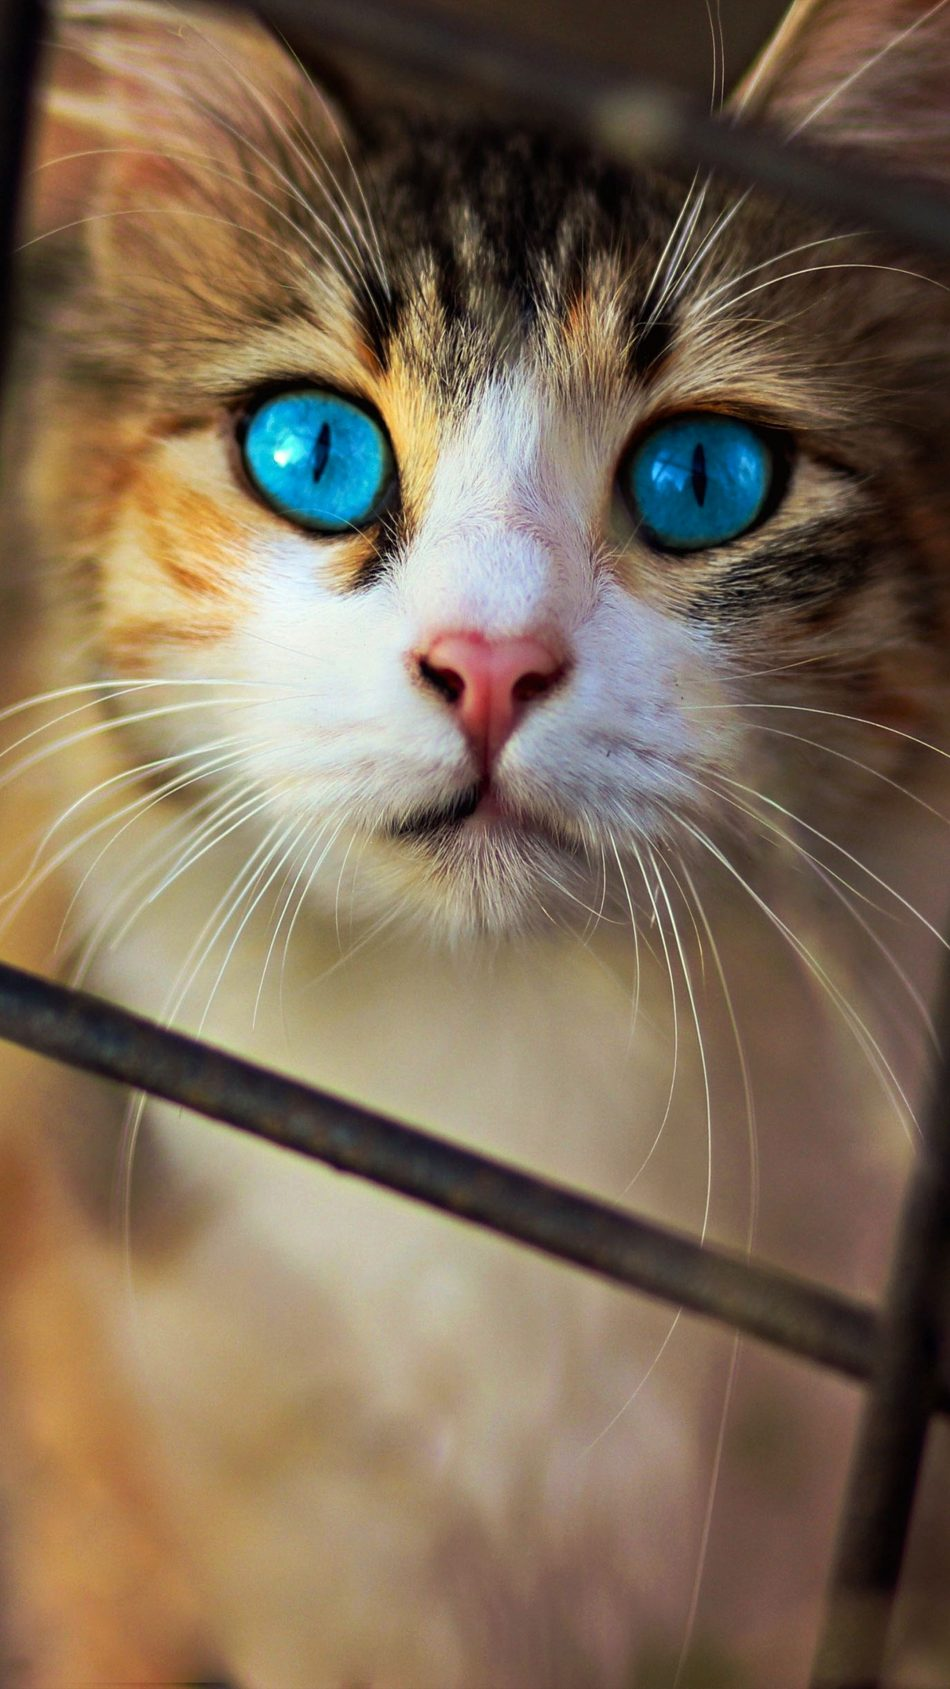 Cute Cat Blue Eyes 4k Ultra Hd Mobile Wallpaper